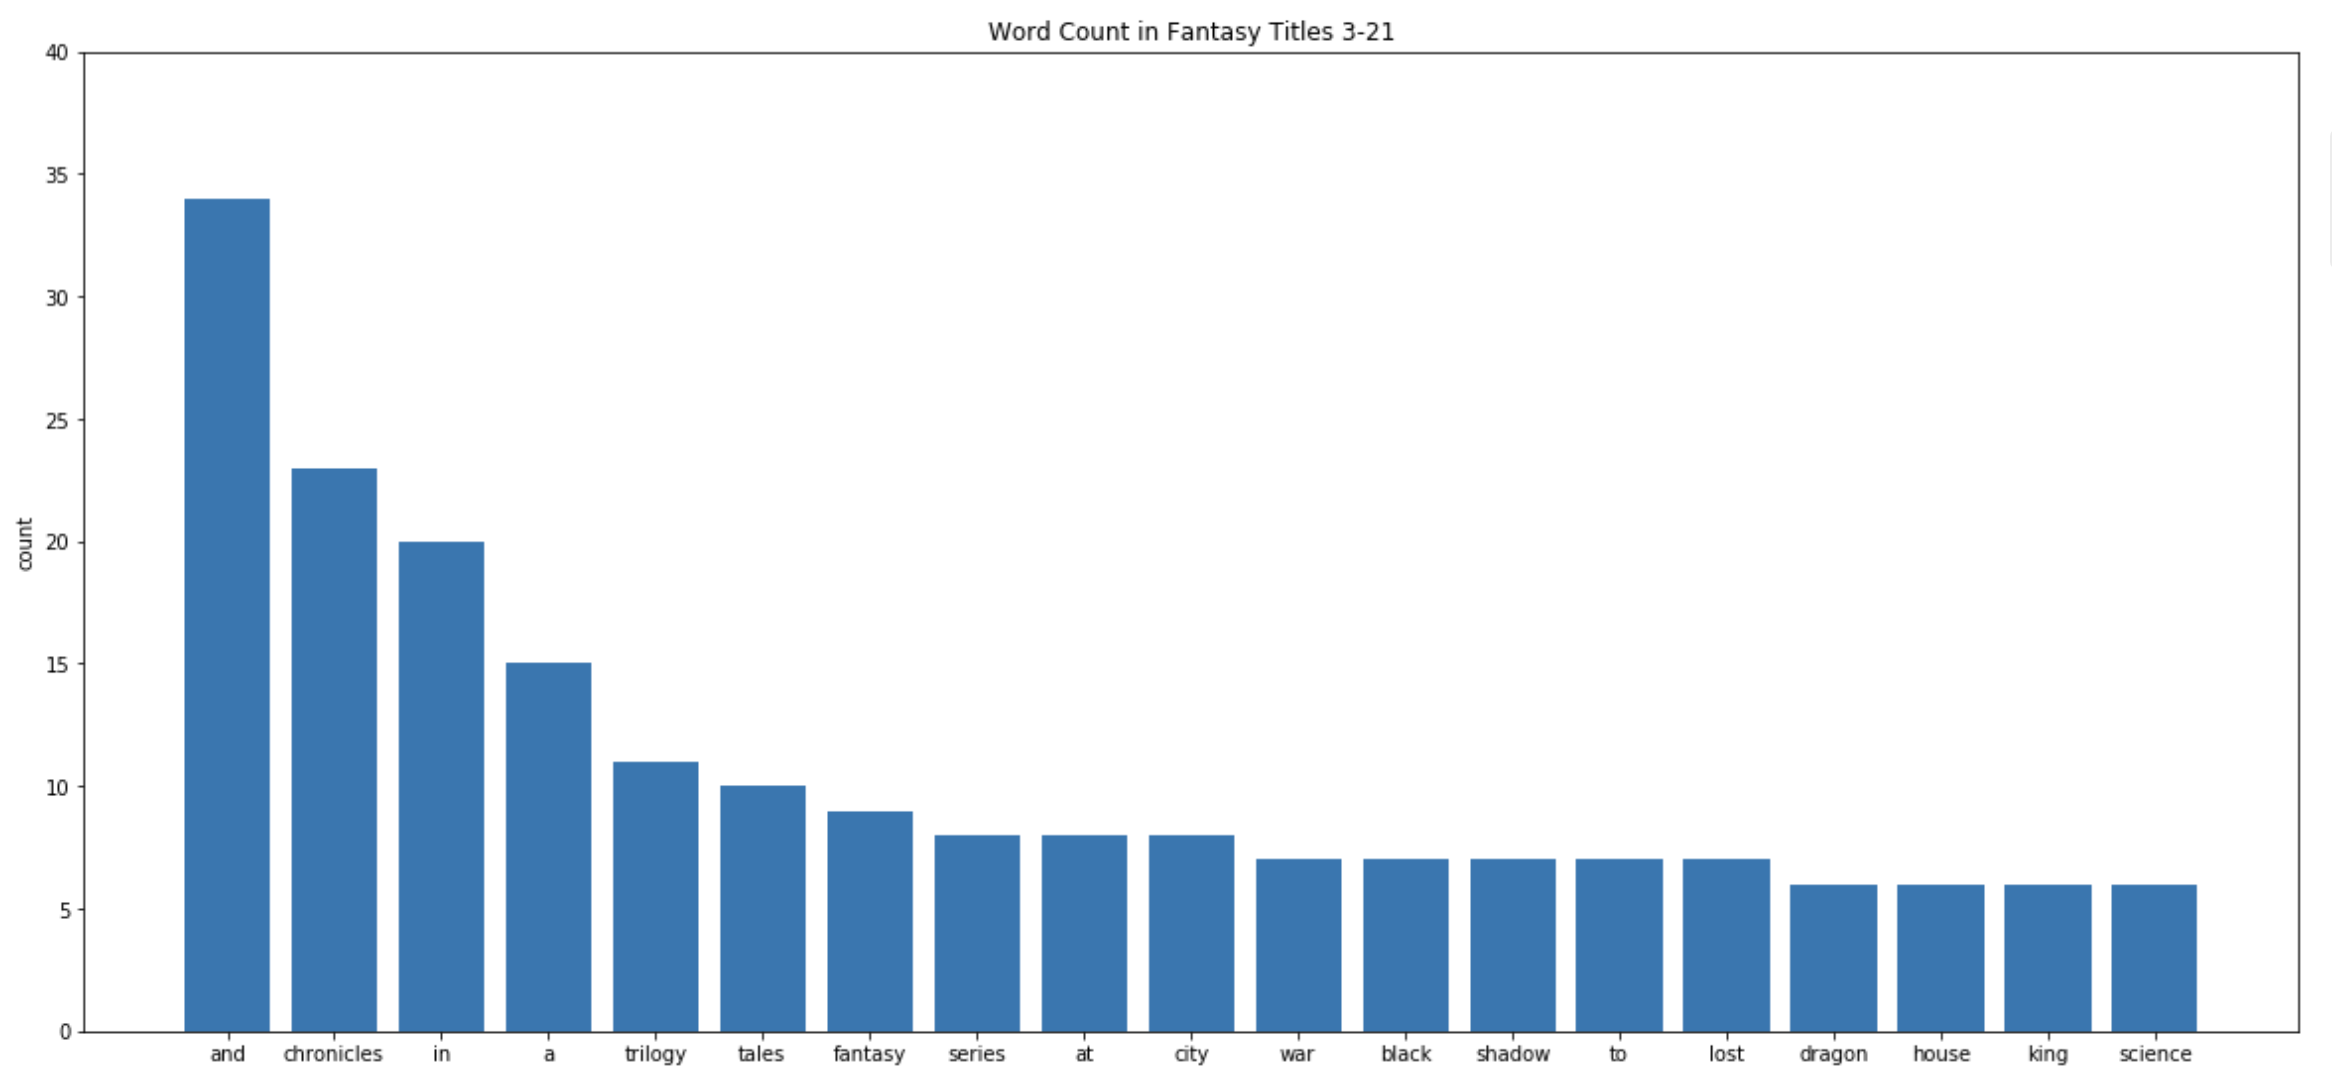 word count in fantasy titles 3–21 - markov chain